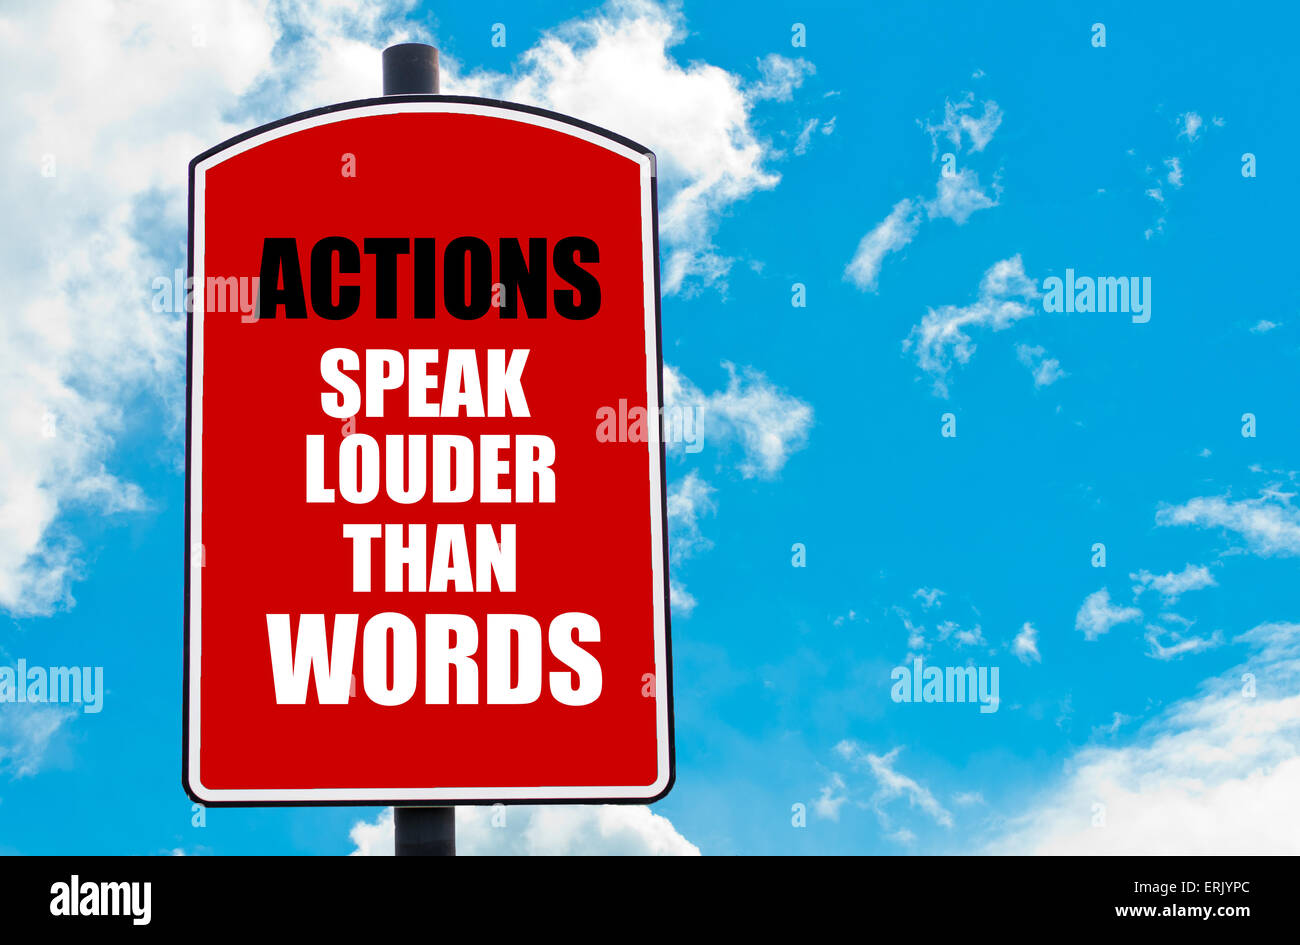 Actions Speak Louder Than Words motivational quote written on red road sign isolated over clear blue sky background. Stock Photo